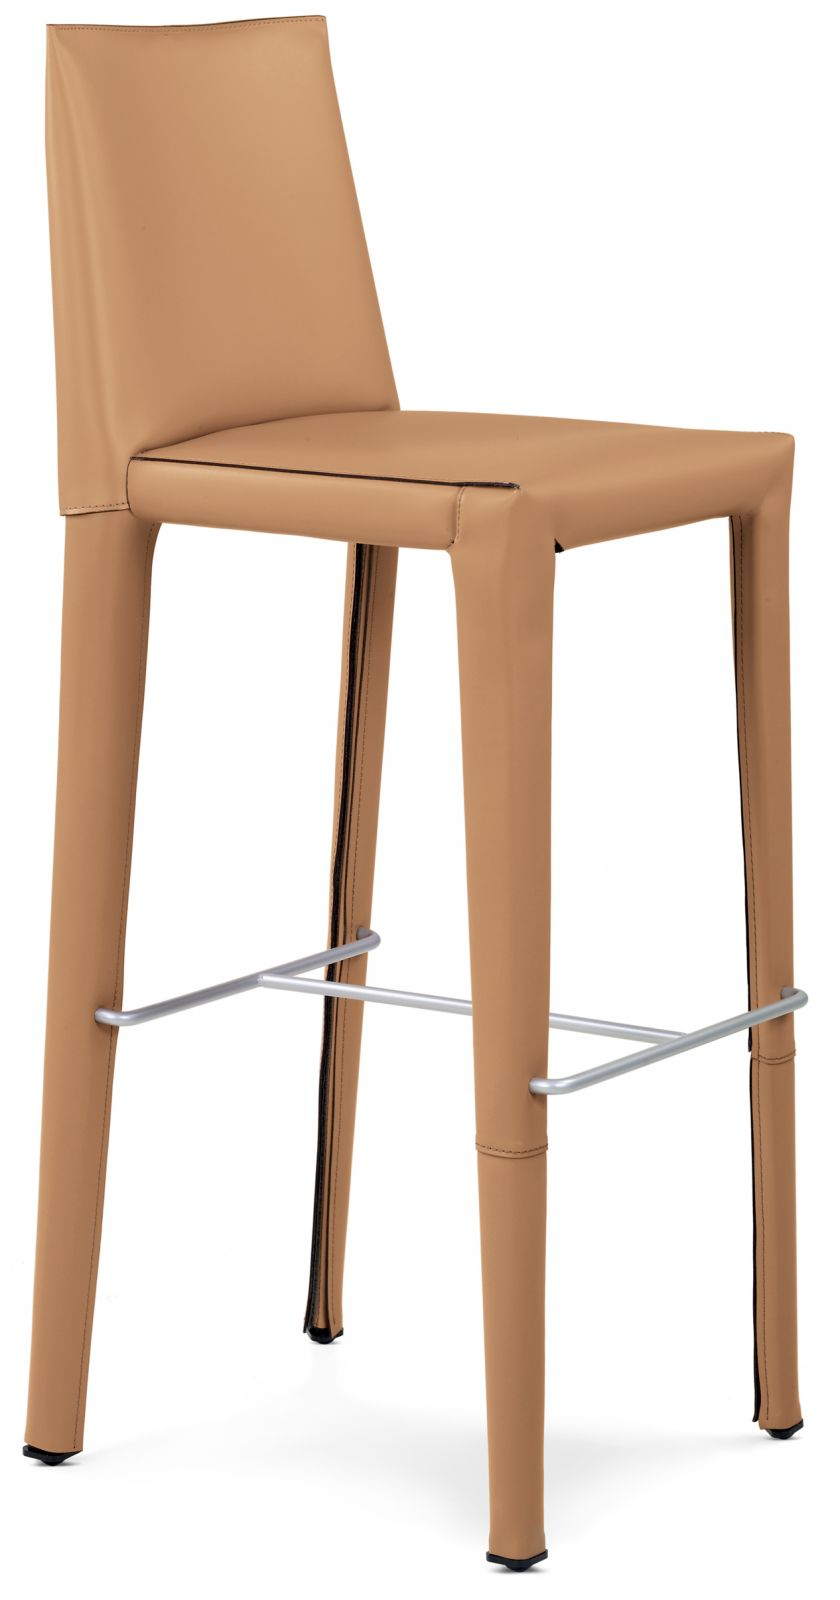 modern-bar-stools-Italian-furniture-large (19).jpg